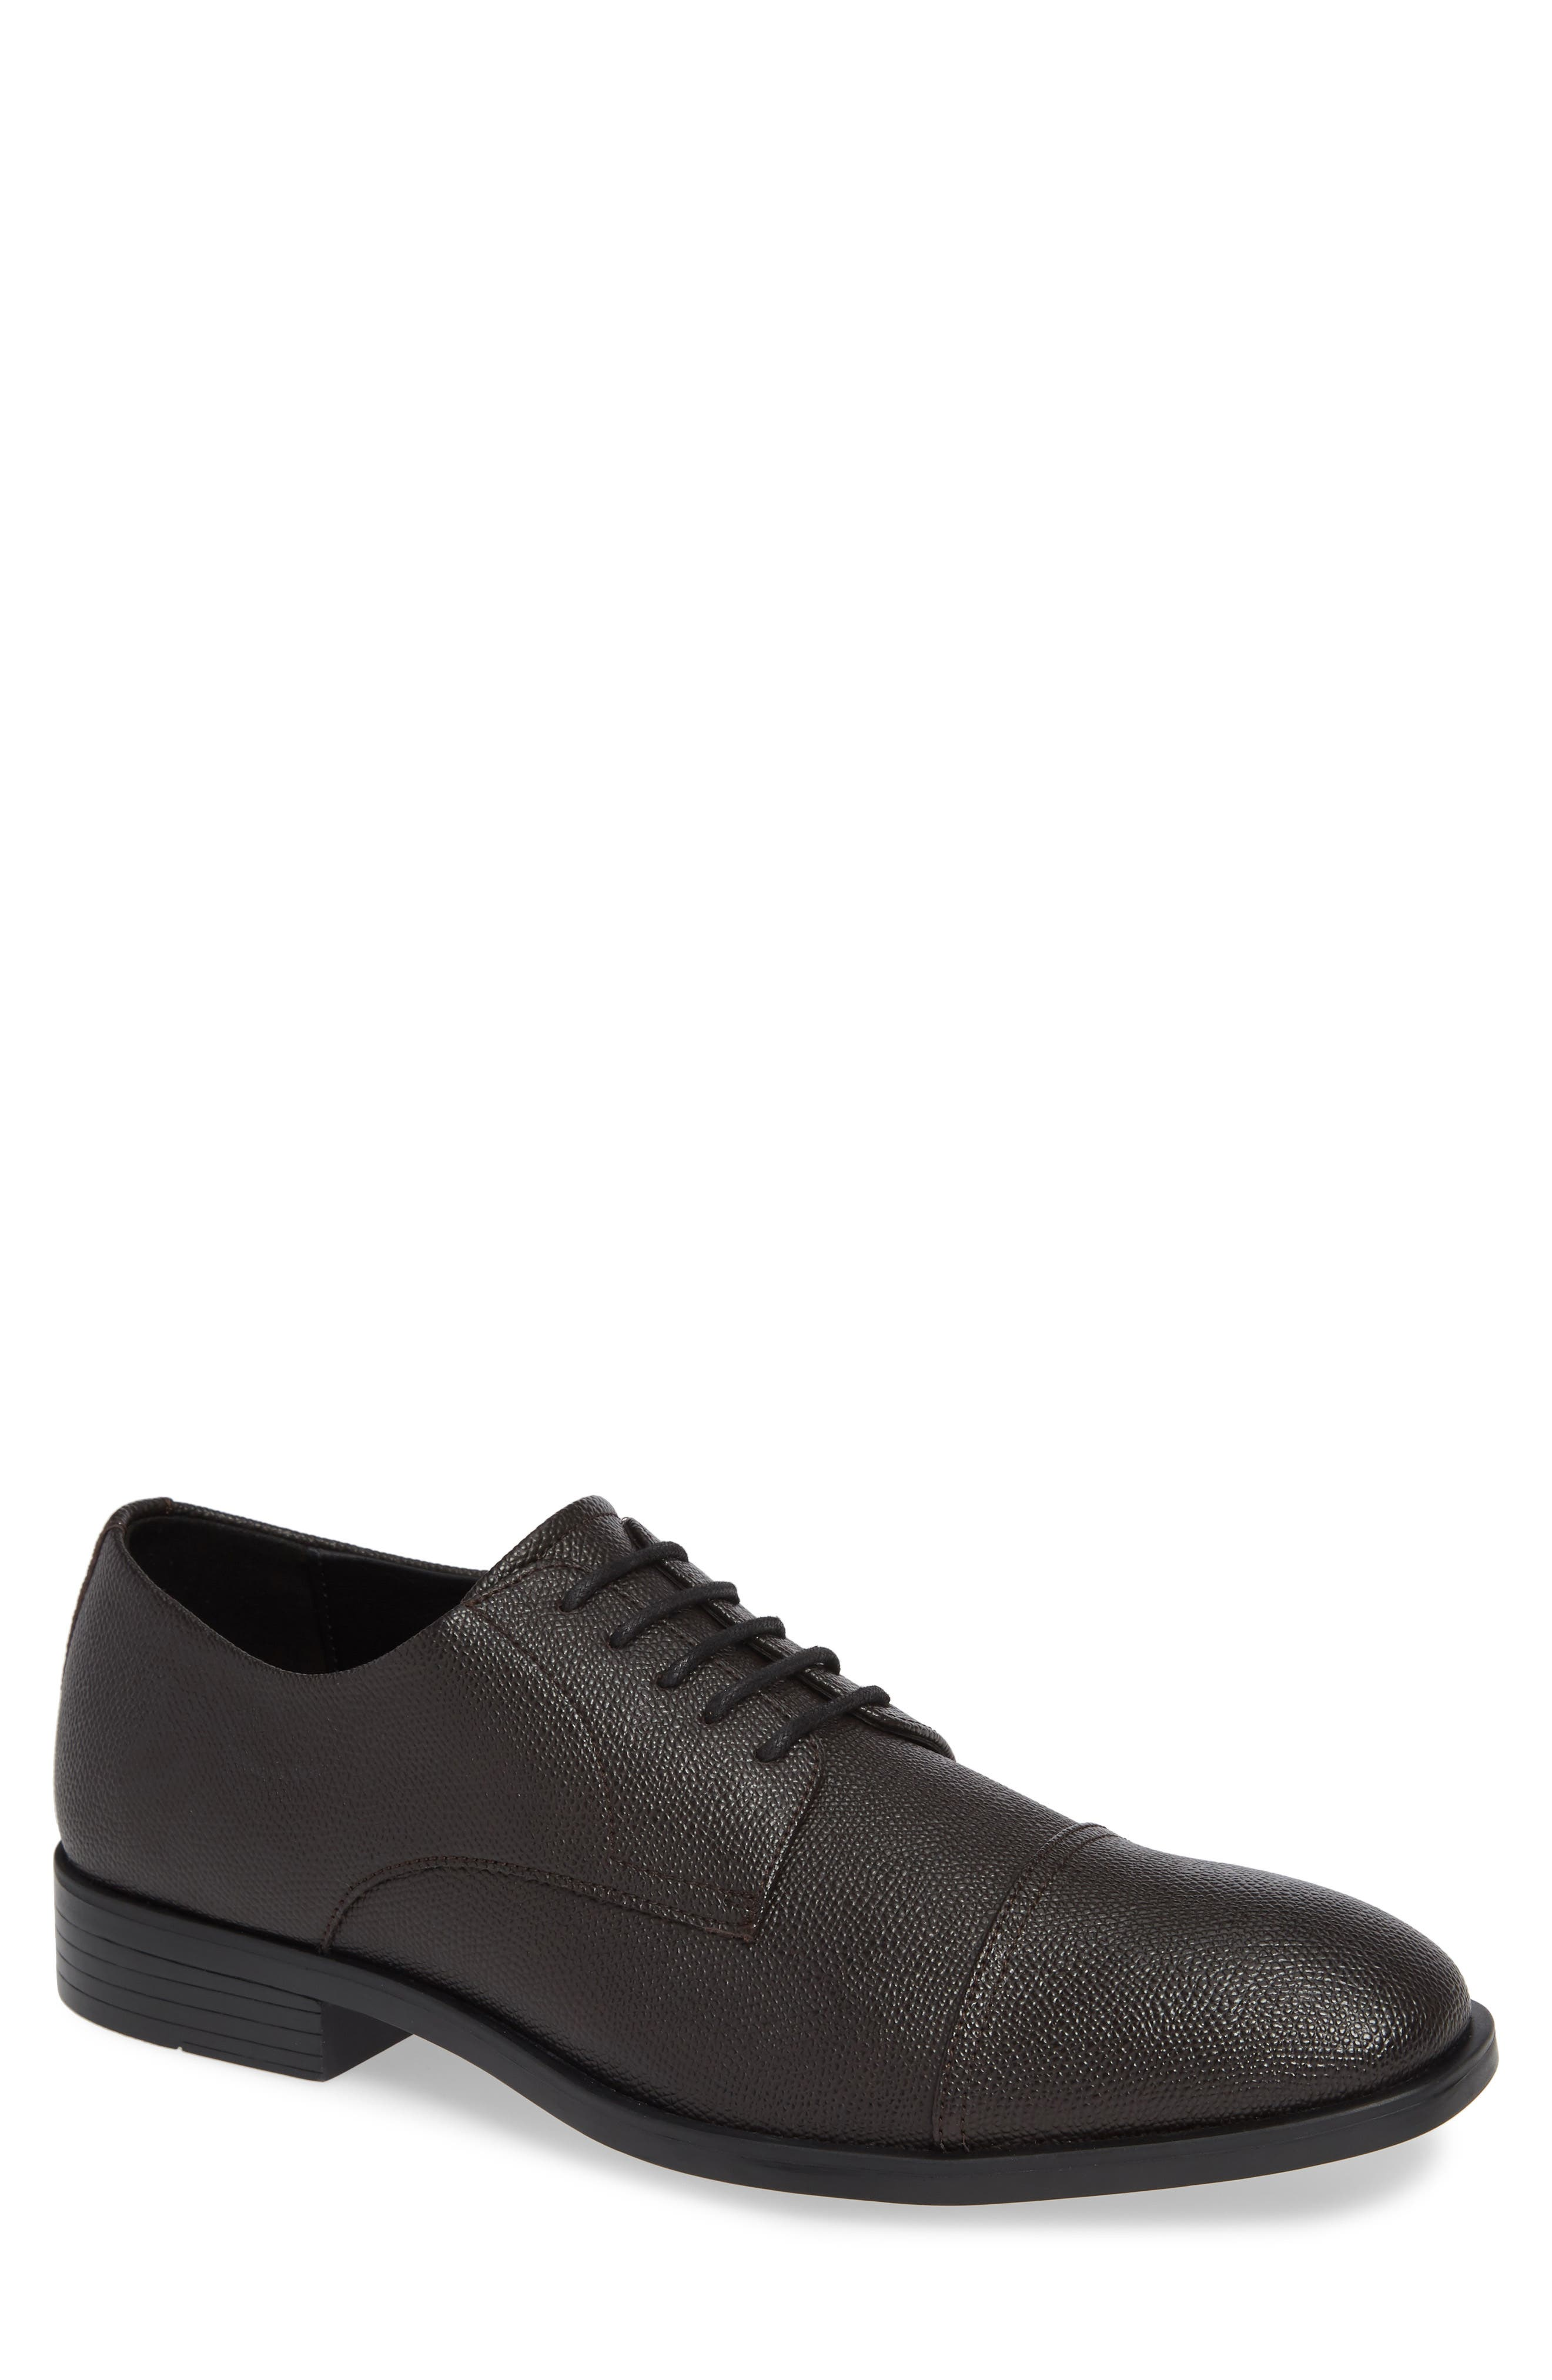 Connor Cap Toe Derby,                             Main thumbnail 1, color,                             DARK BROWN LEATHER